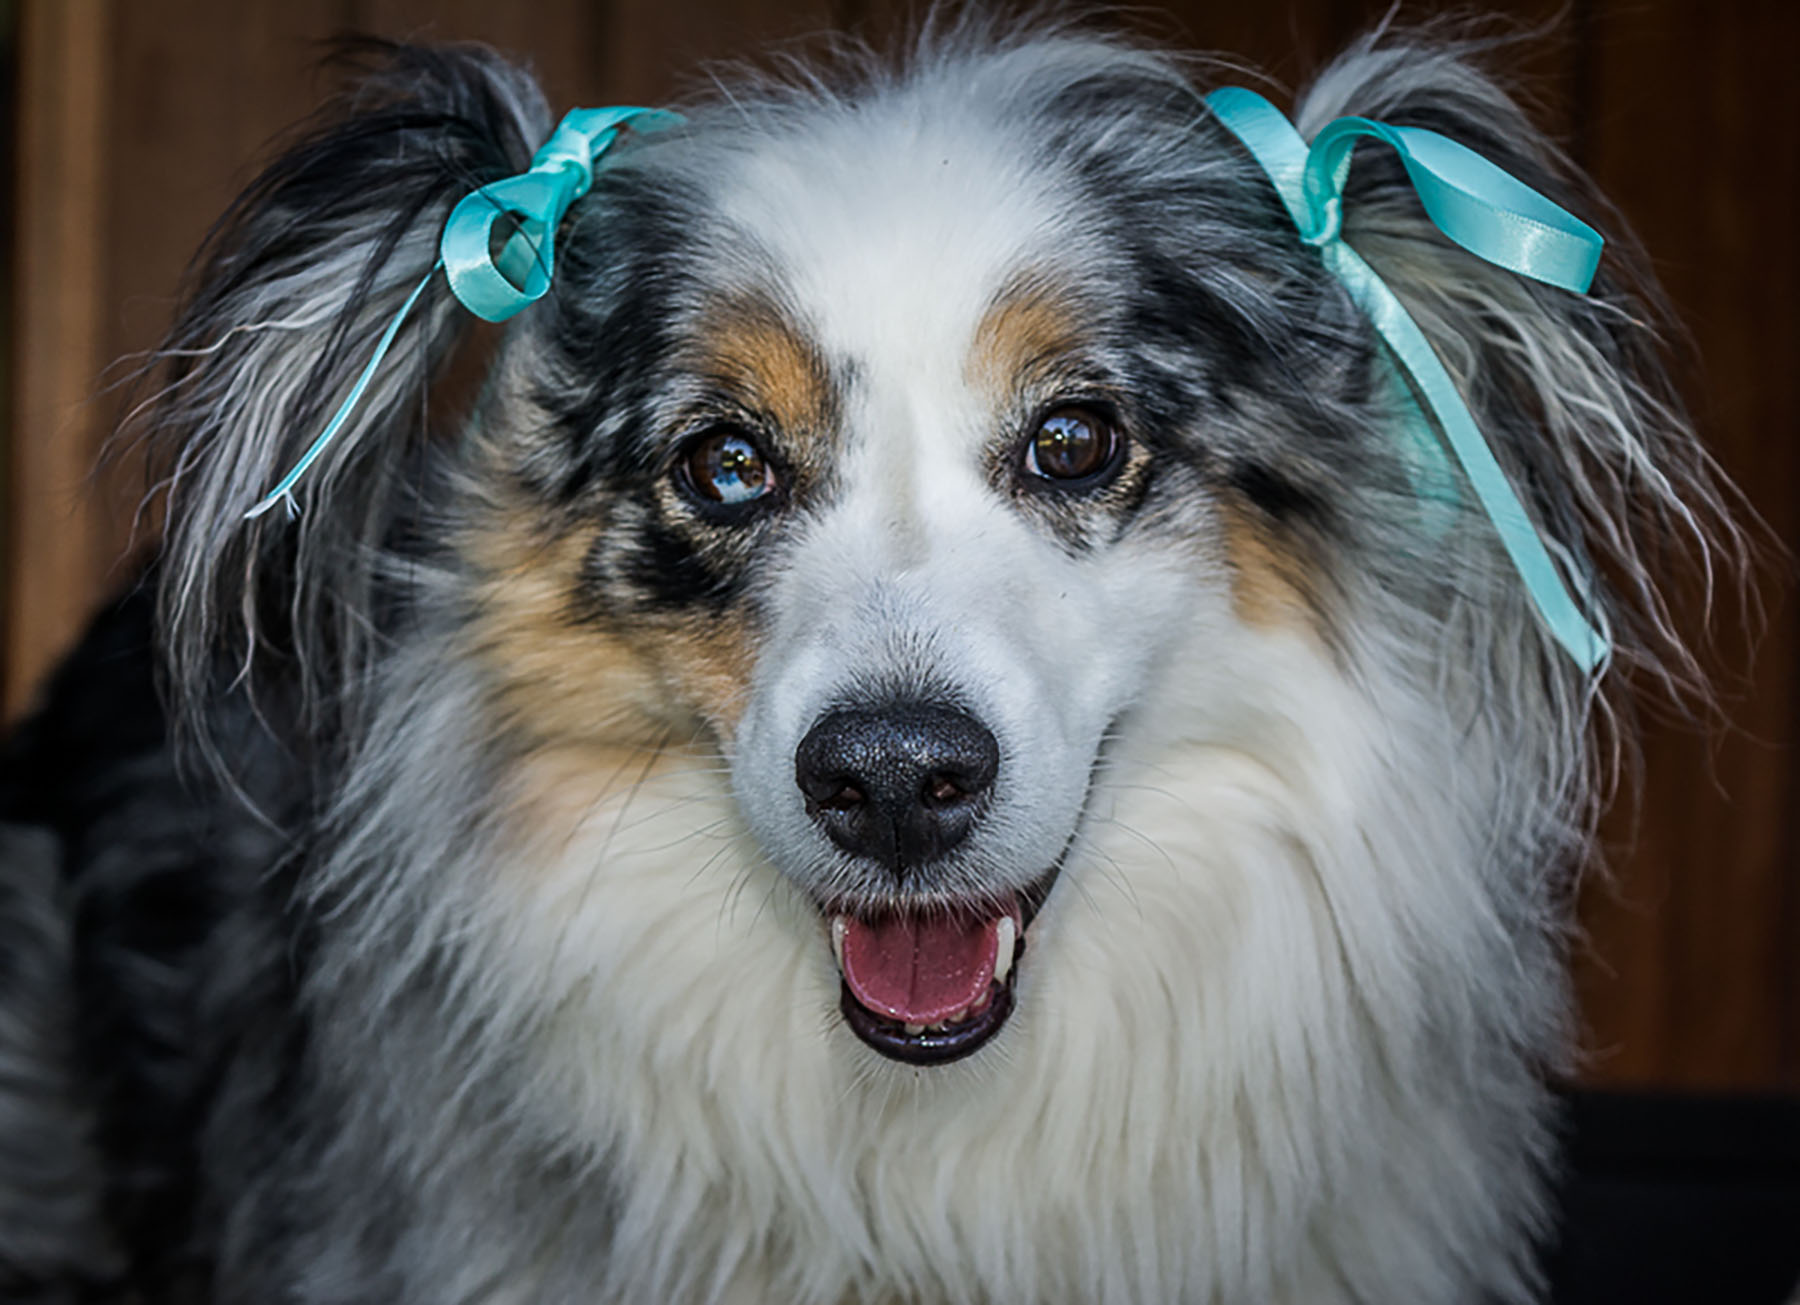 Dog with bows in her hair